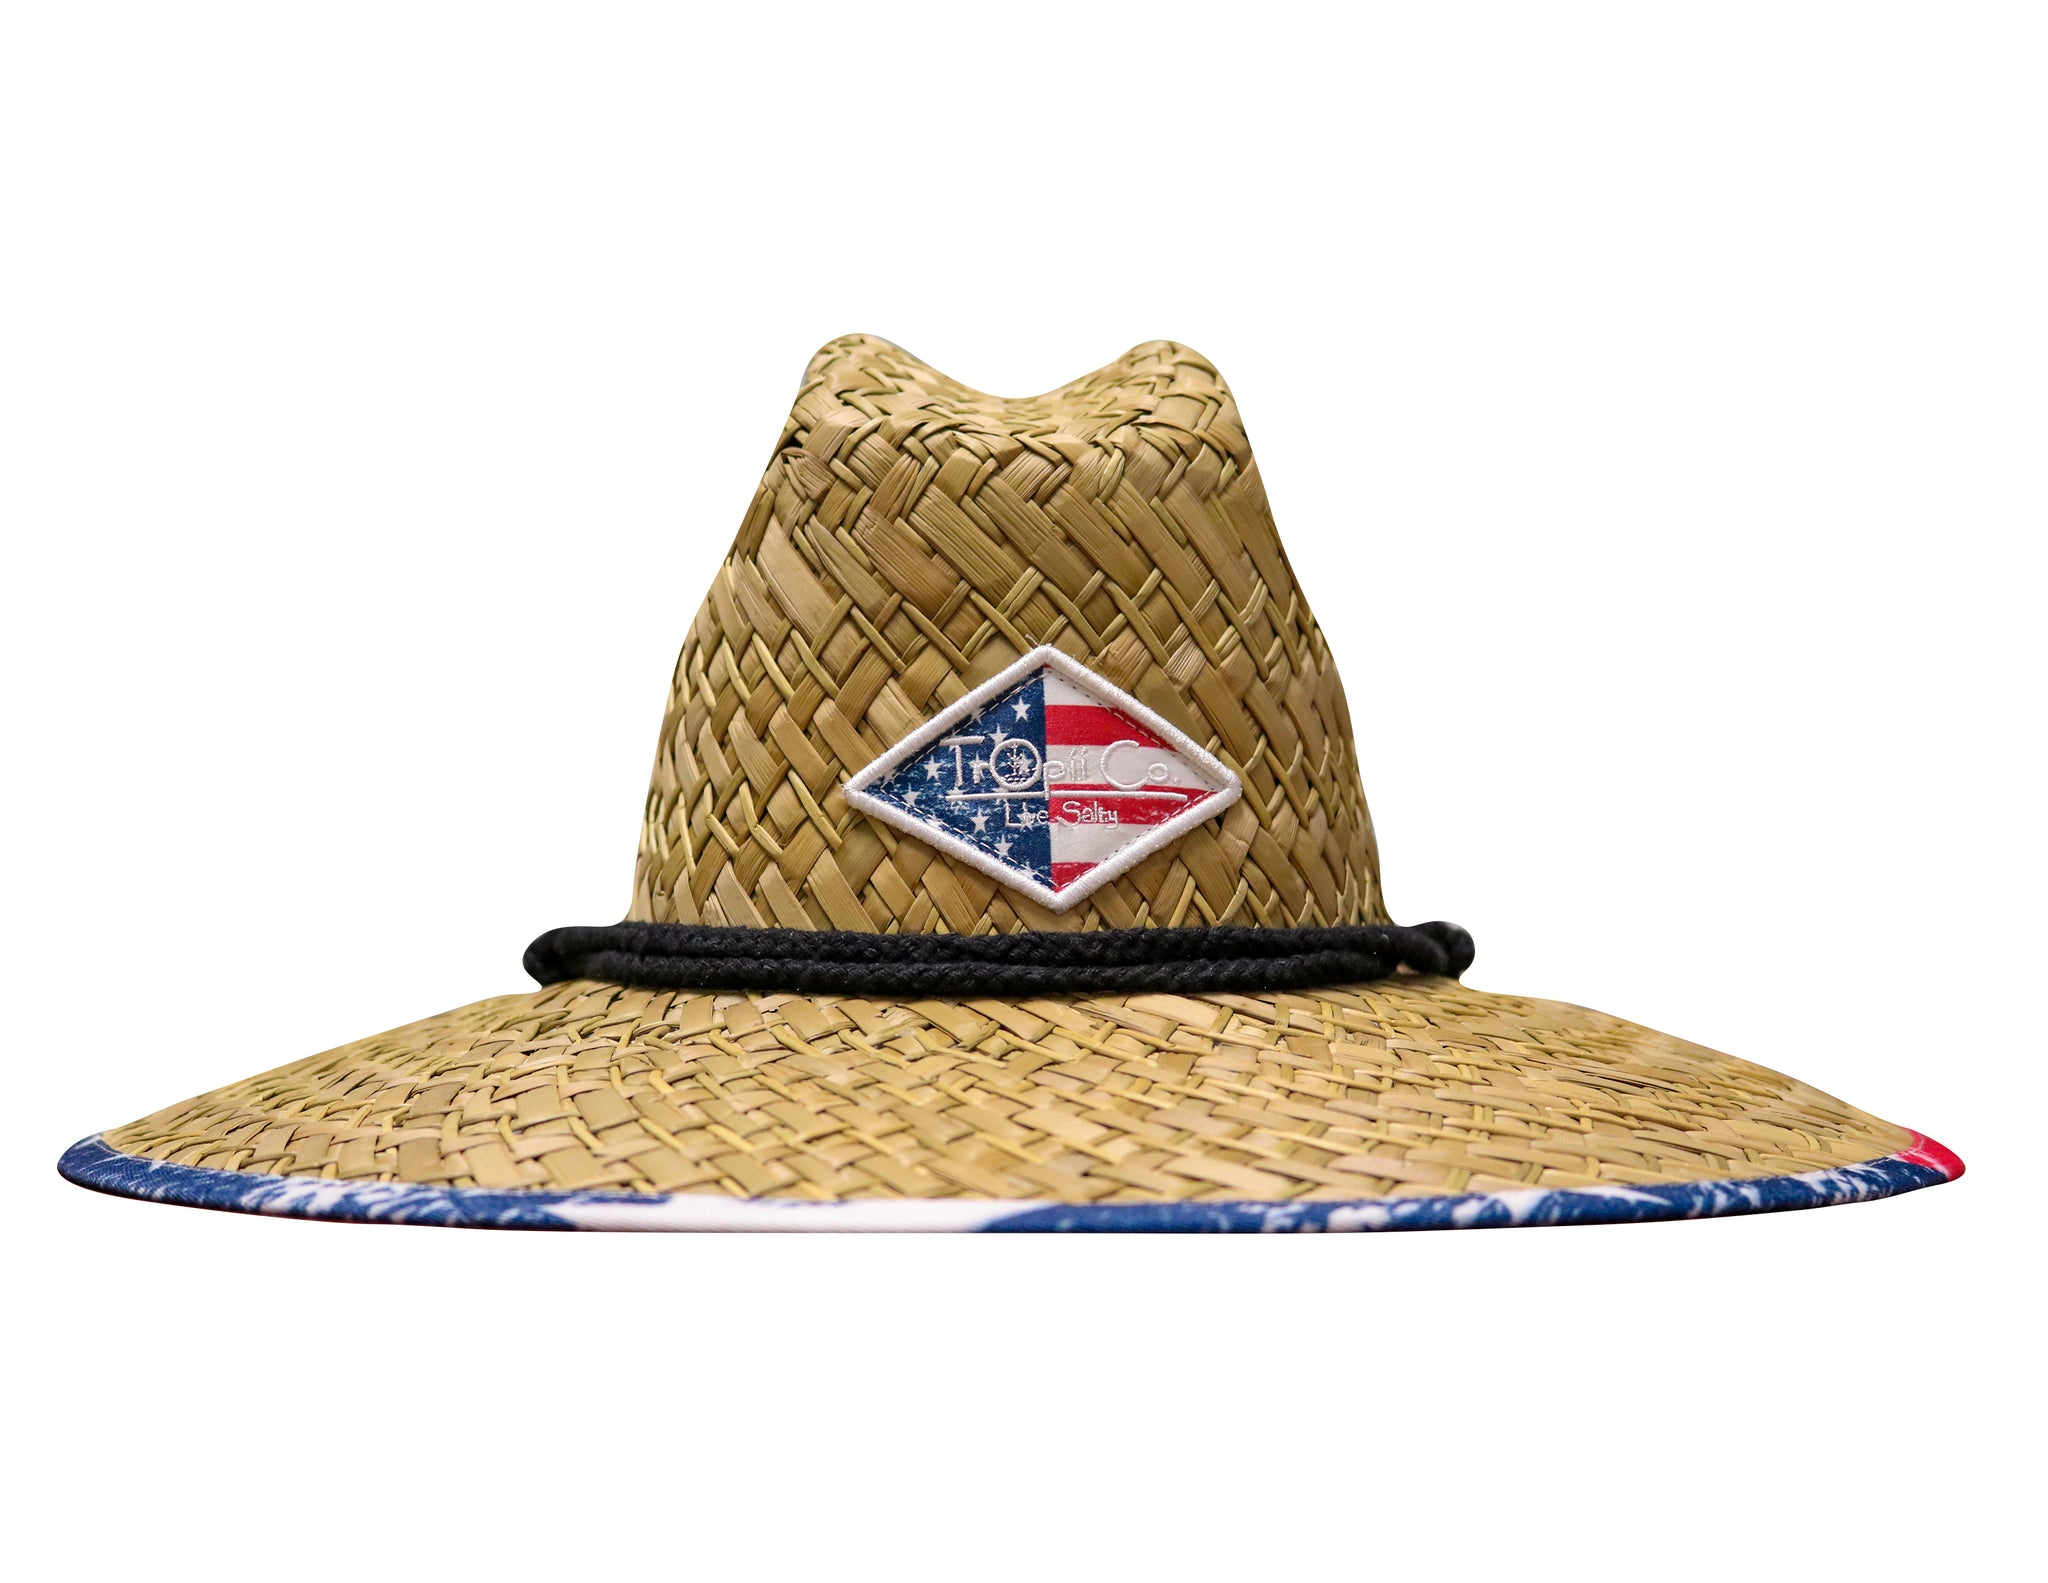 1776 - tropii co. Cool straw hat with American flag design under the brim